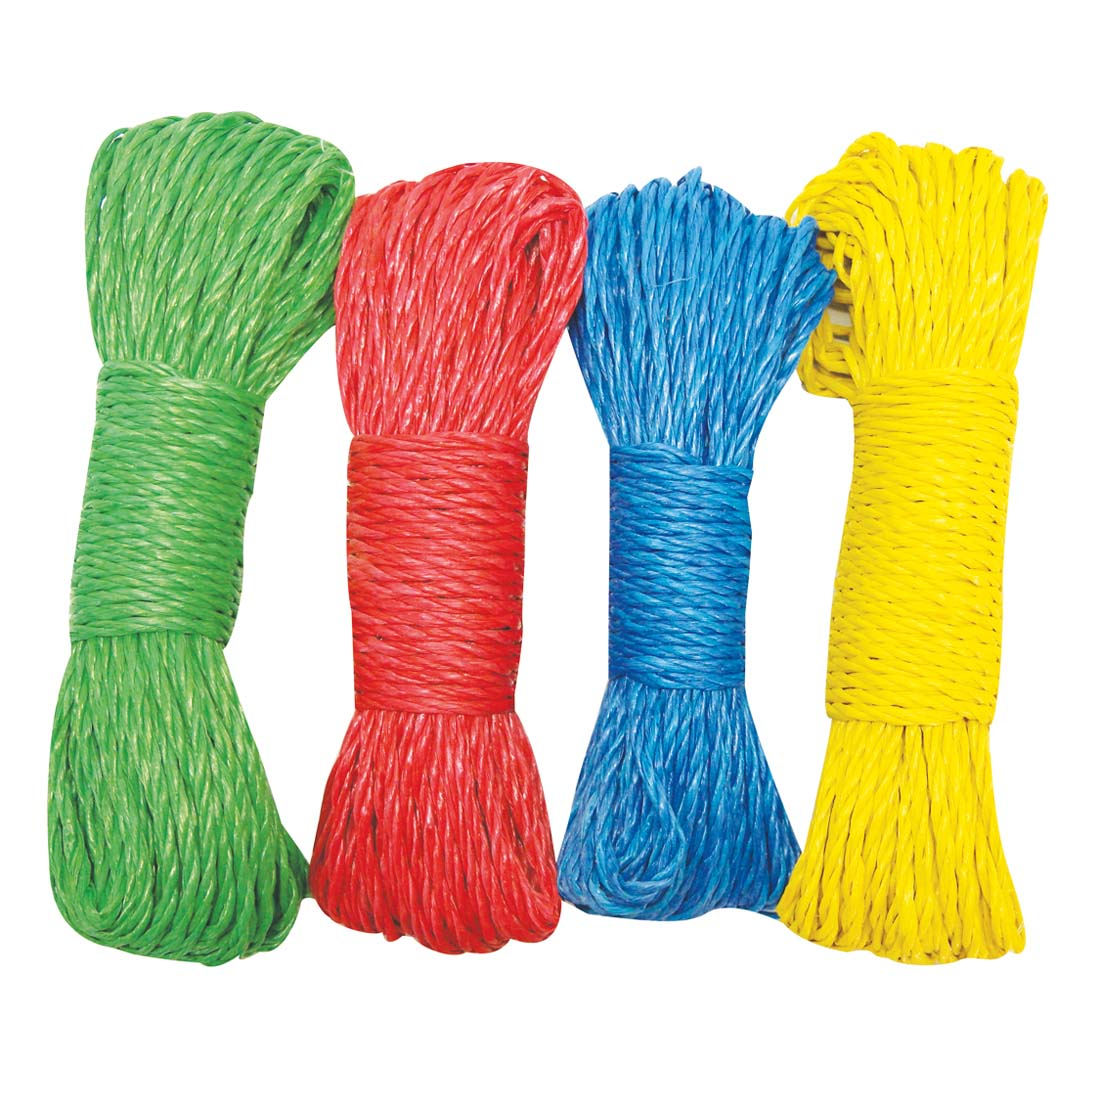 View ALL PURPOSE ROPE 83 FEET ASSORTED COLORS